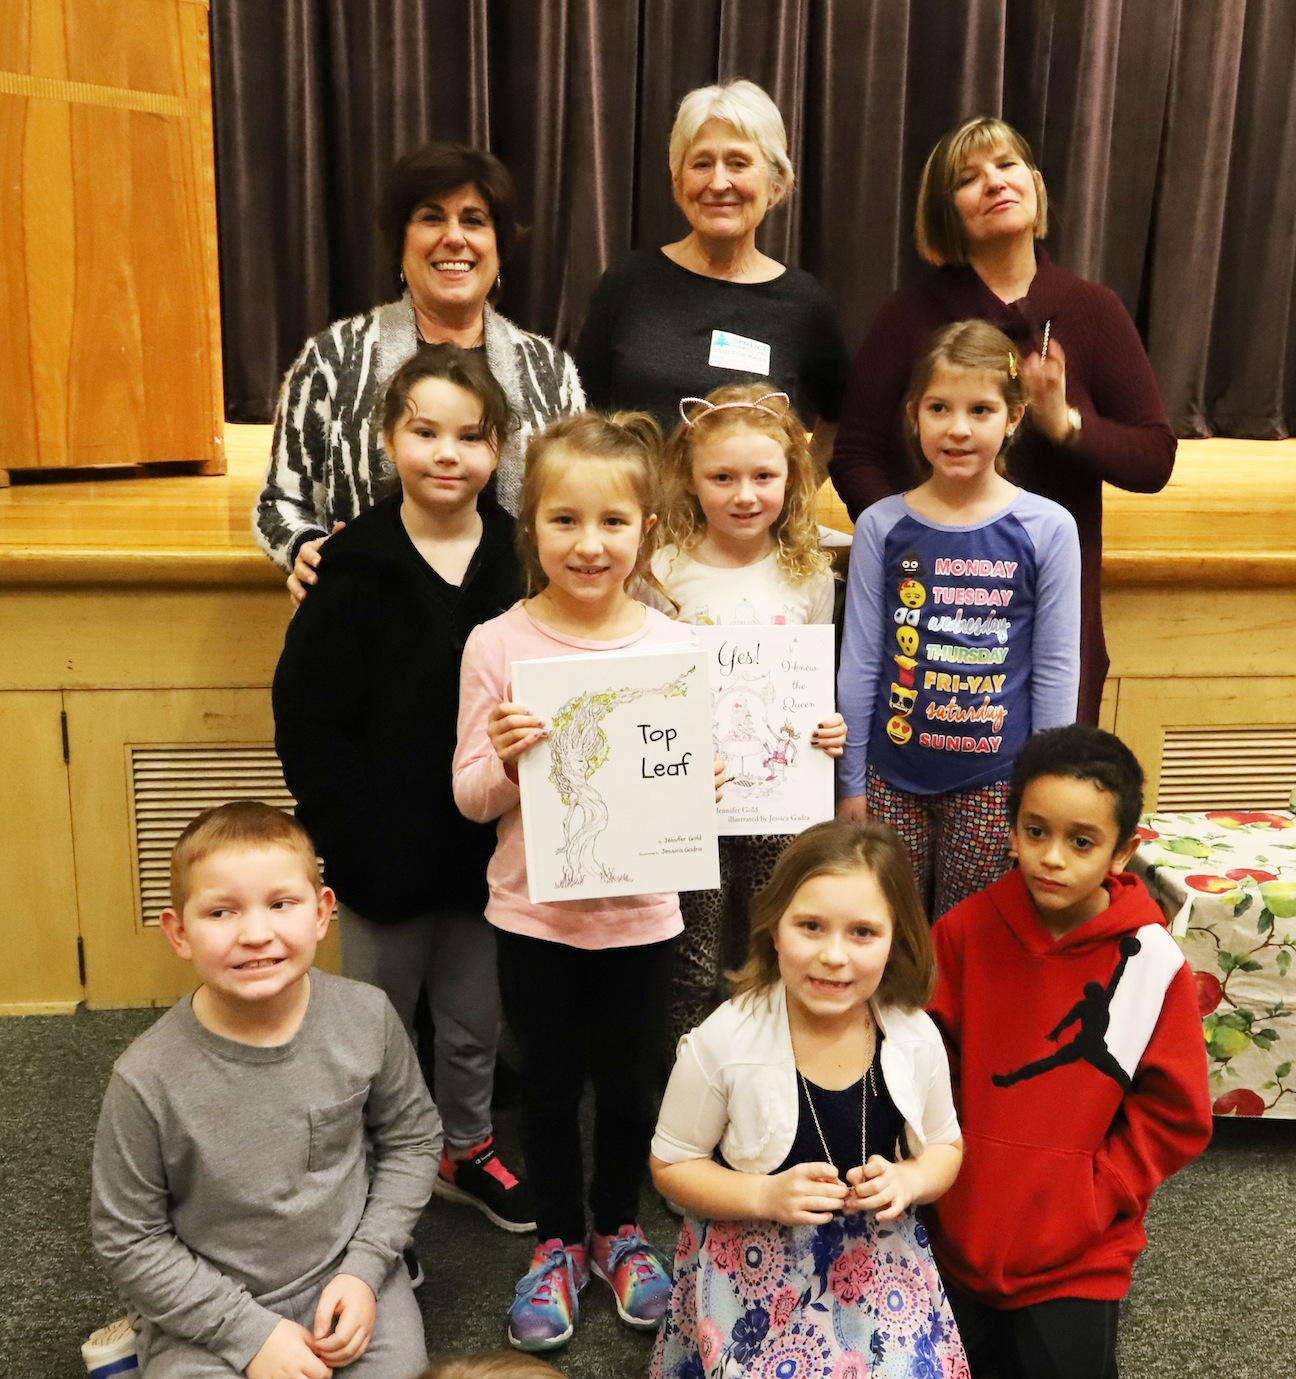 Patti Adler (Spruce Principal), Jennifer Gold (Author), Susan Moore (Second grade teacher/organizer), and Second Grade students: Allison Royer, Mia Randles, Katie Steele, Natalie Valint, Jaxson Harvey, Veronica Cruz and Mayson Cummings.